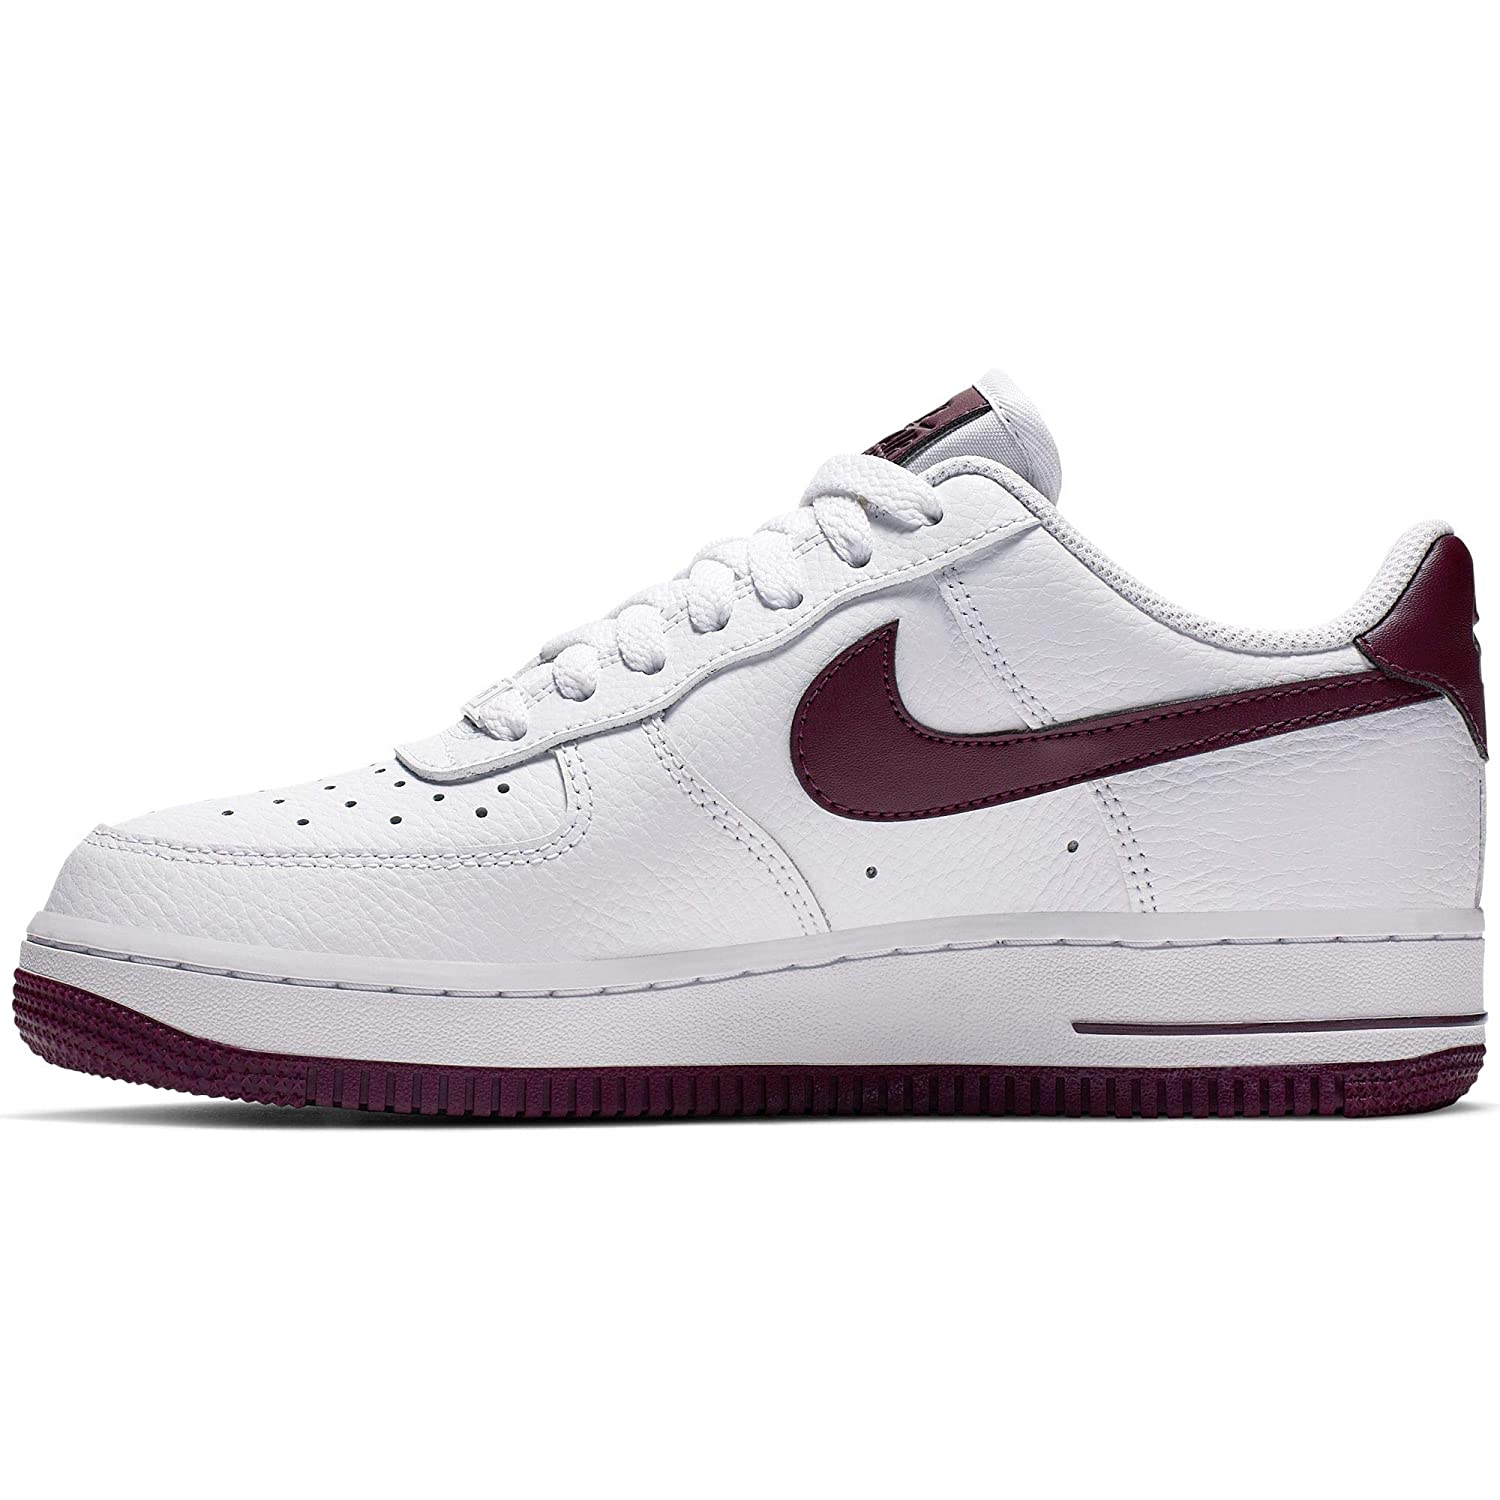 the latest 980a2 1b36a Nike WMNS Air Force 1 '07 Womens Sneakers AH0287-105, White/Bordeaux